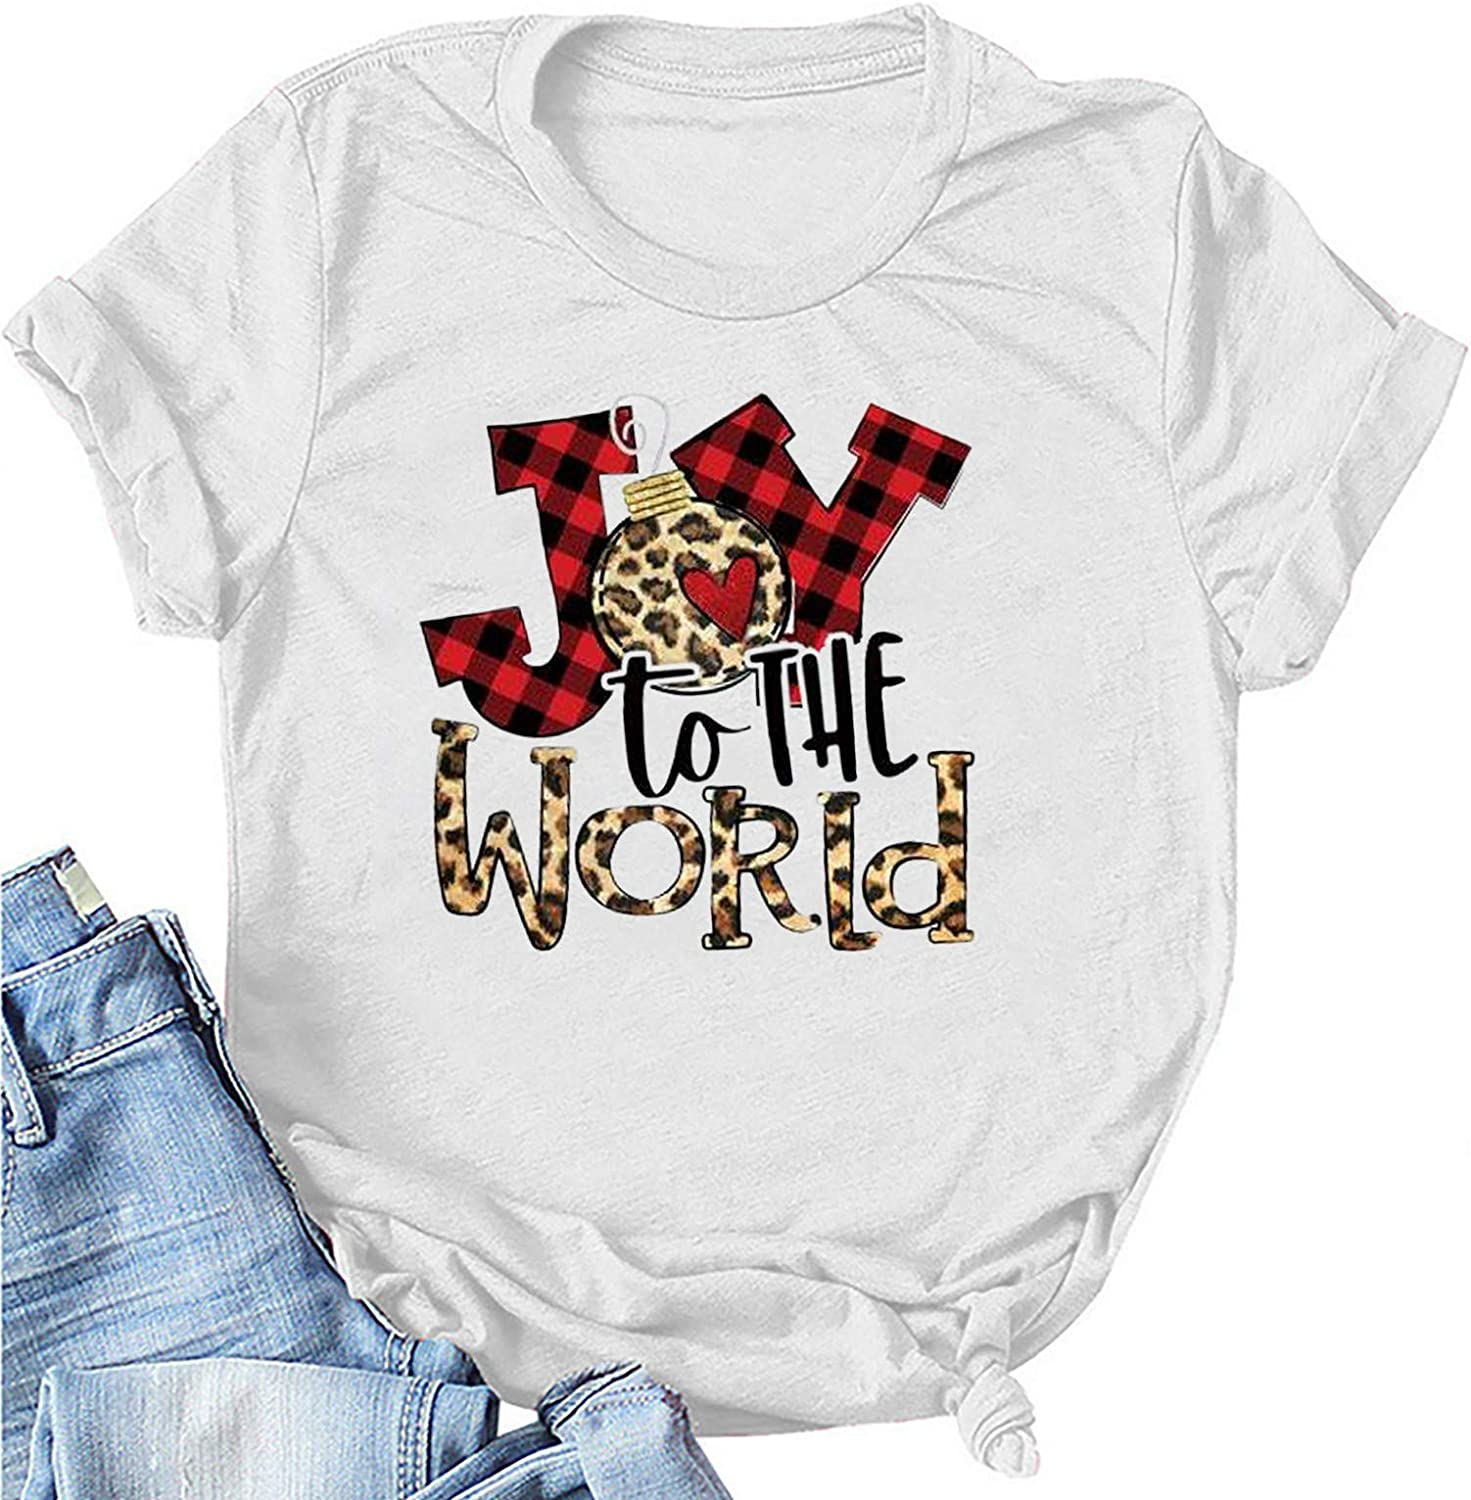 Joy to The World Shirts for Women Leopard Plaid Pattern Graphic